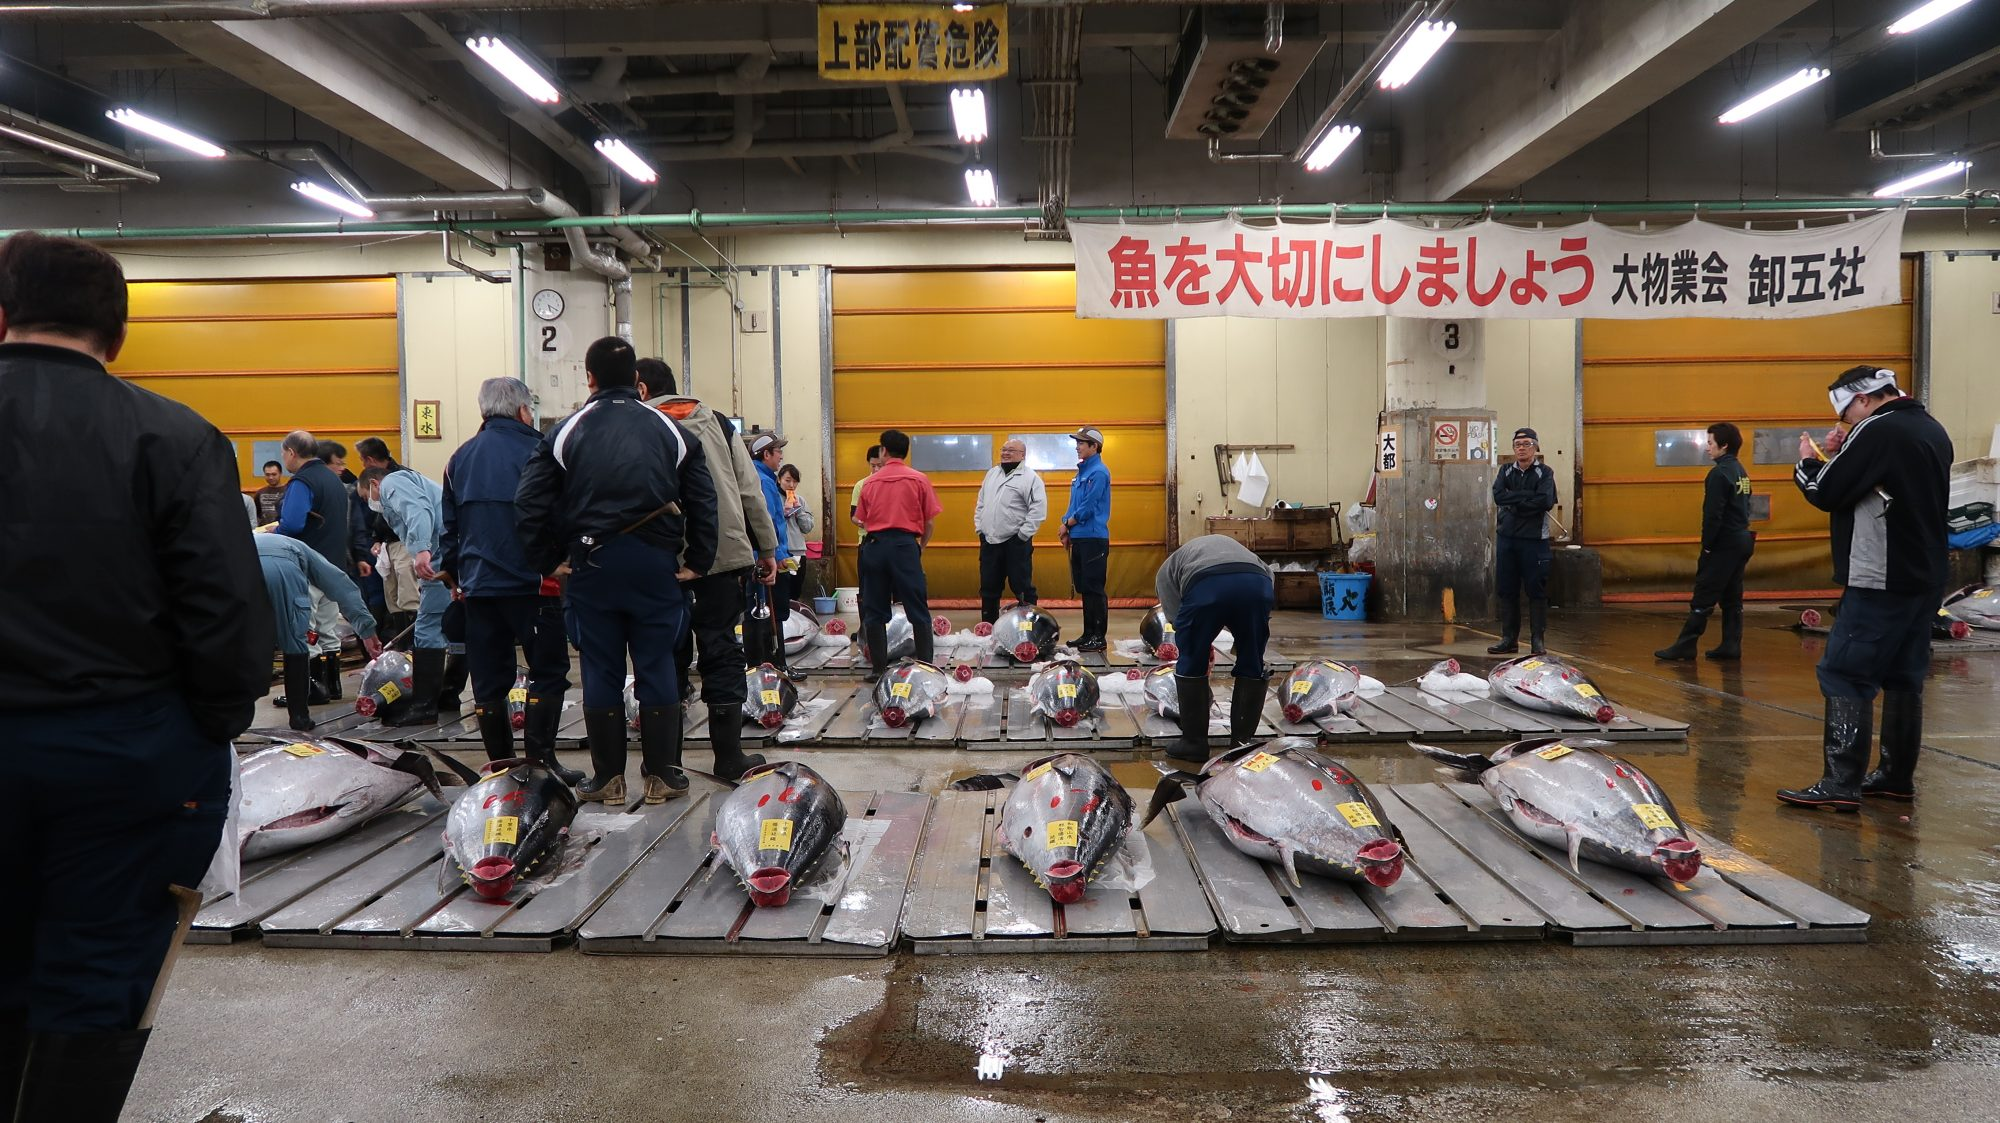 tsukiji-fish-market-tuna-auction-blog1117.JPG